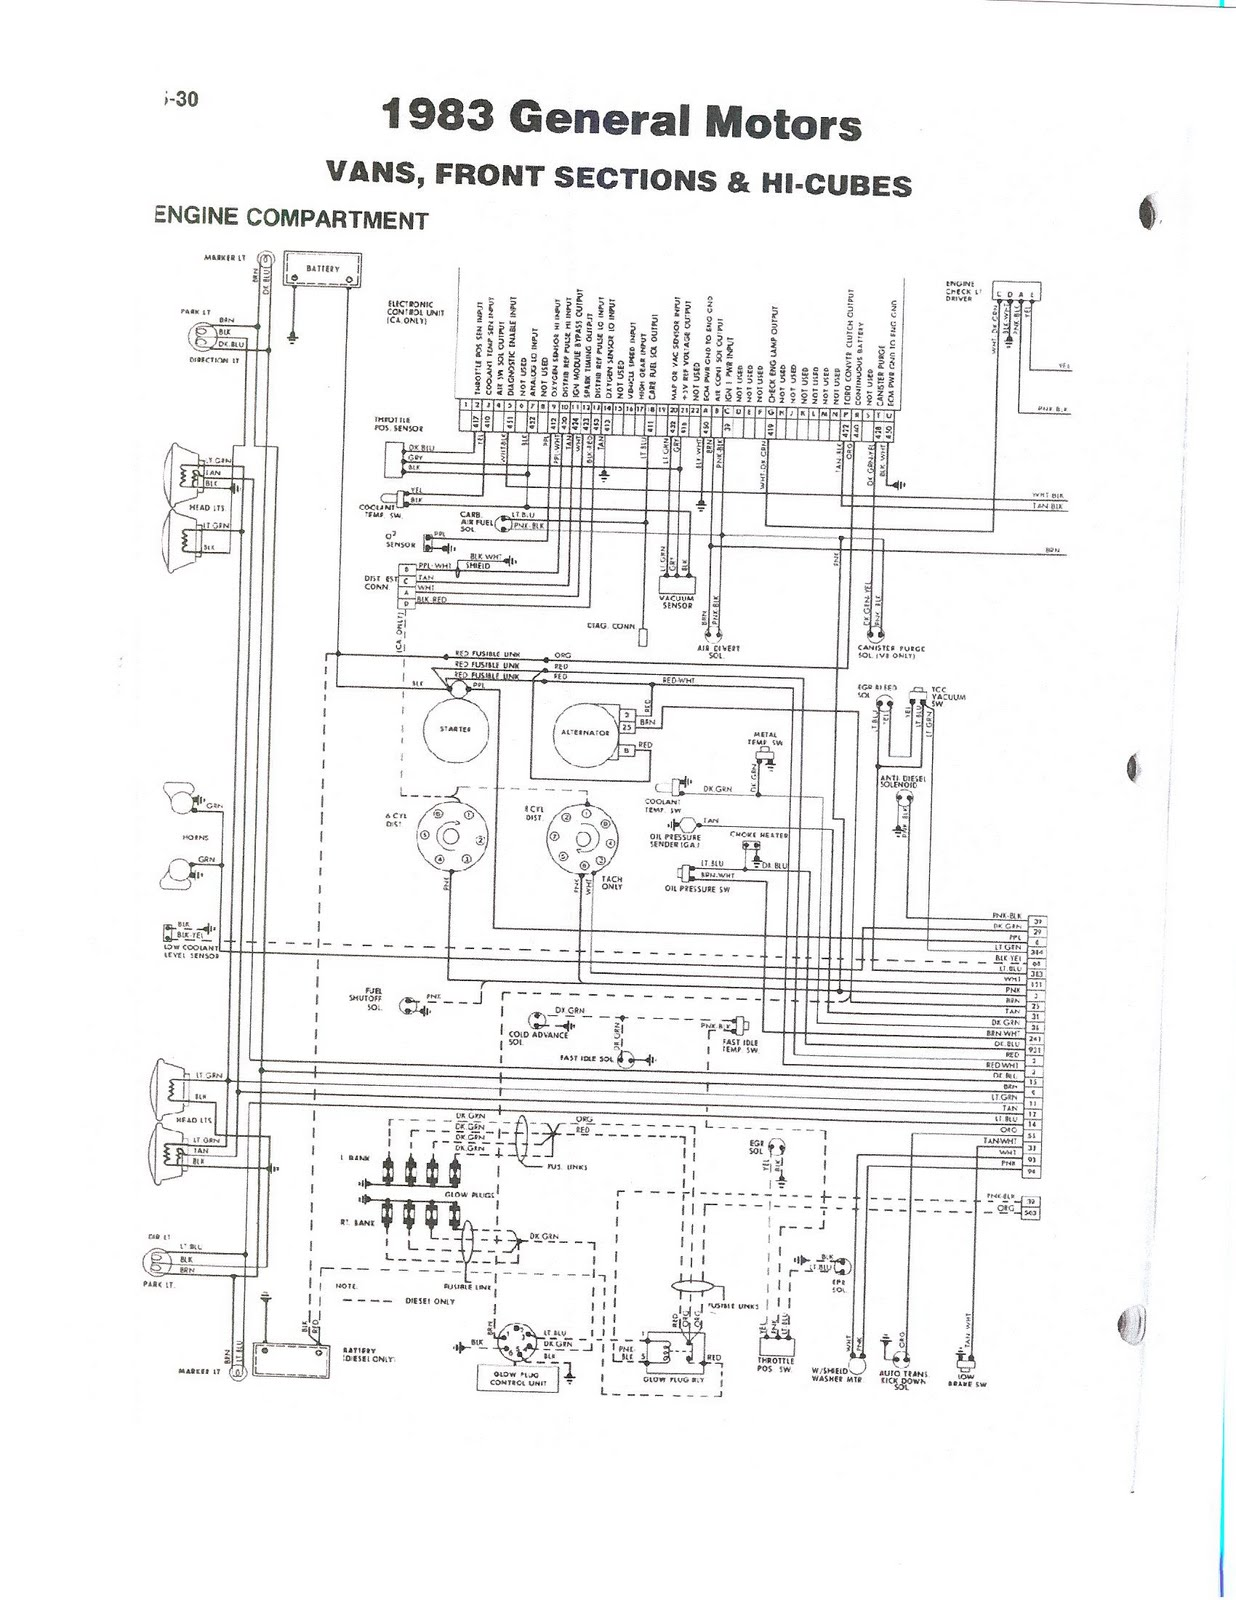 Fleetwood Rv Wiring Diagram 1983 Chevy Wiring Diagram